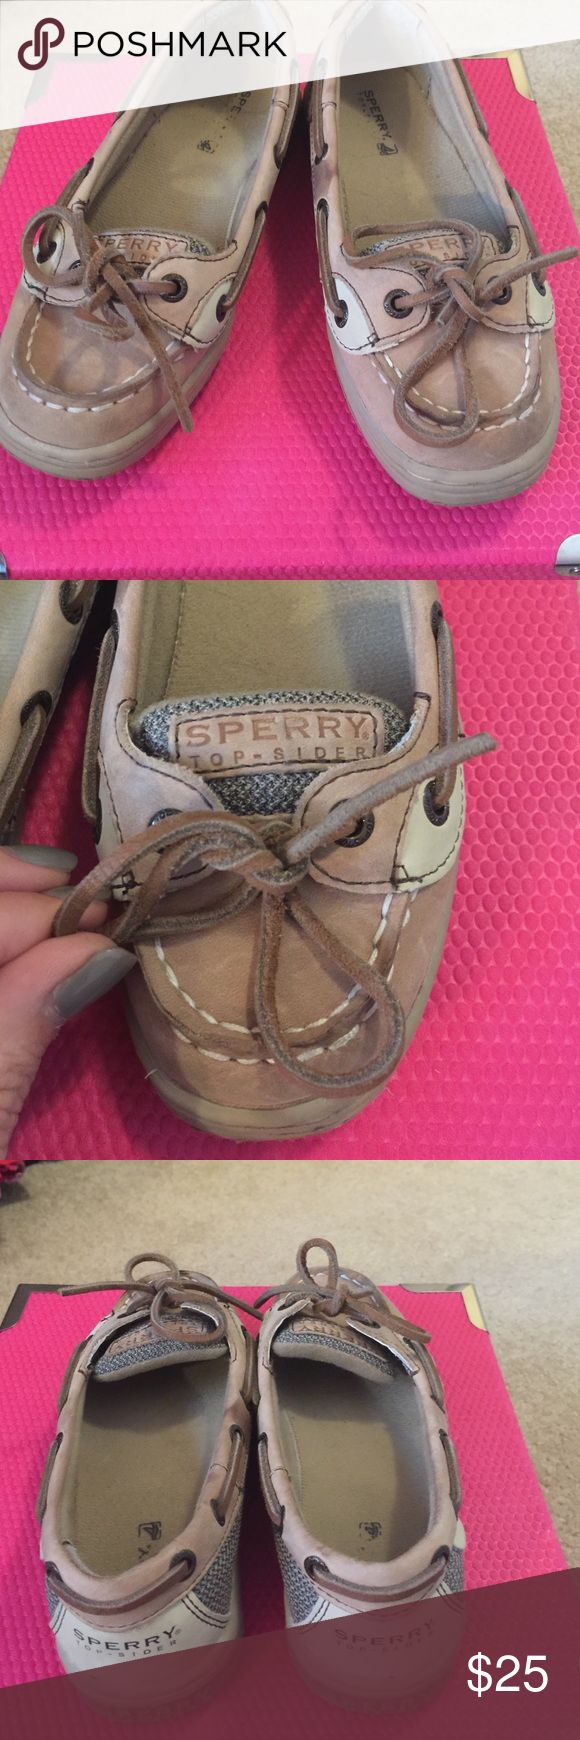 Sperry tan flats in excellent condition! Bought from the Sperry store and these are in excellent condition. Great detail as they always do. Easy to get on and off so another mom favorite ! And my daughter loves sperry as they are not just known for a classy style -- but comfort!! Yeaaa!! Win- win! Sperry Top-Sider Shoes